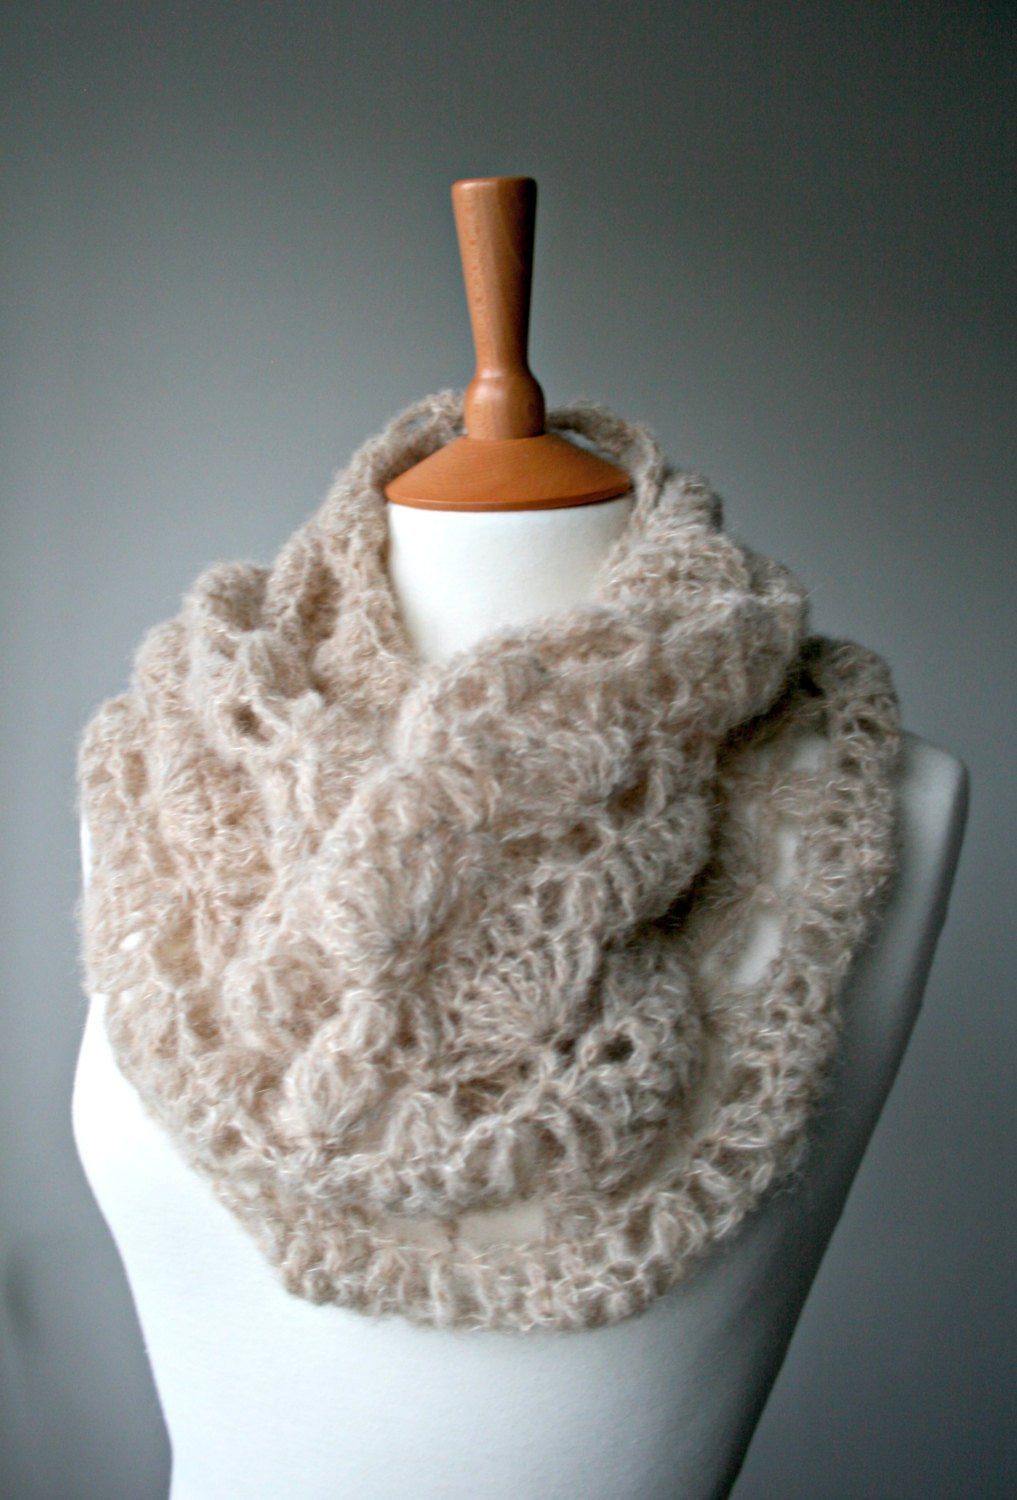 Crochet Scarf Patterns Fresh Crochet Pattern Scarf Crochet Pattern Lace Silk Crochet Cowl Of Charming 49 Models Crochet Scarf Patterns